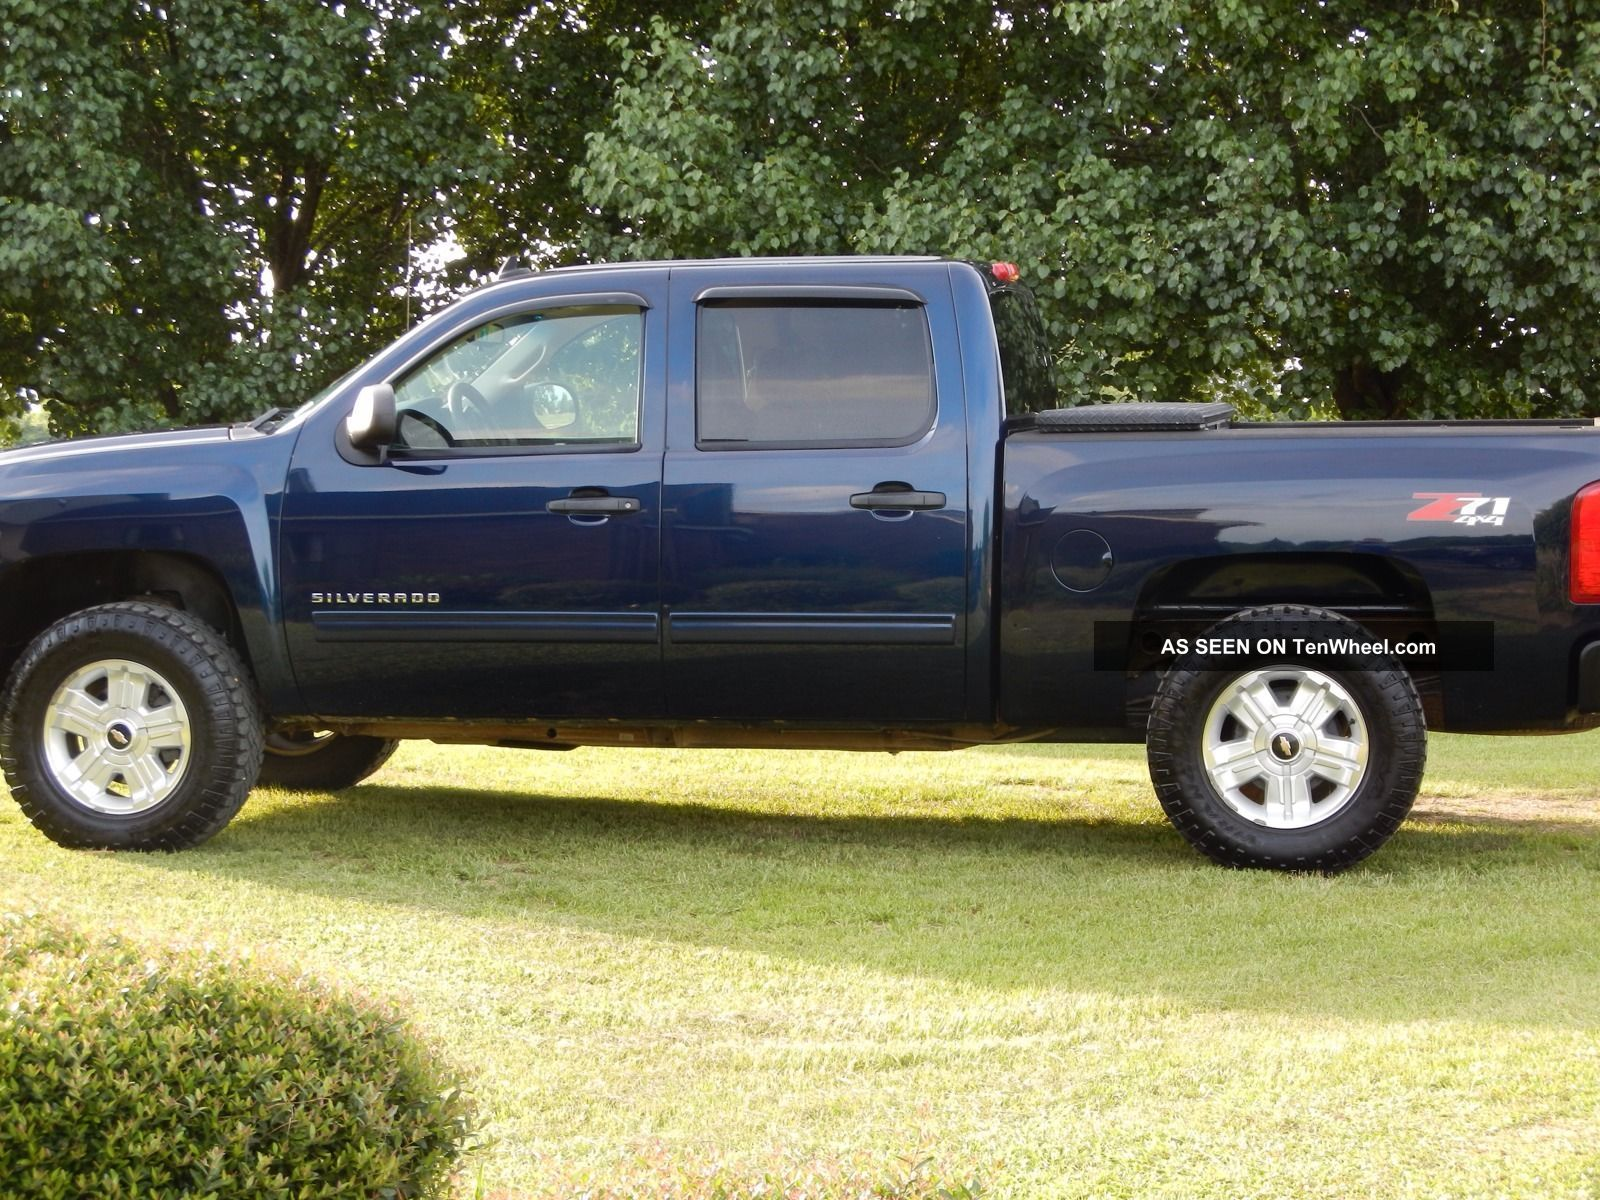 2011 chevrolet silverado 1500 z71 lt crew 4 door 5 3l blue 4x4. Black Bedroom Furniture Sets. Home Design Ideas